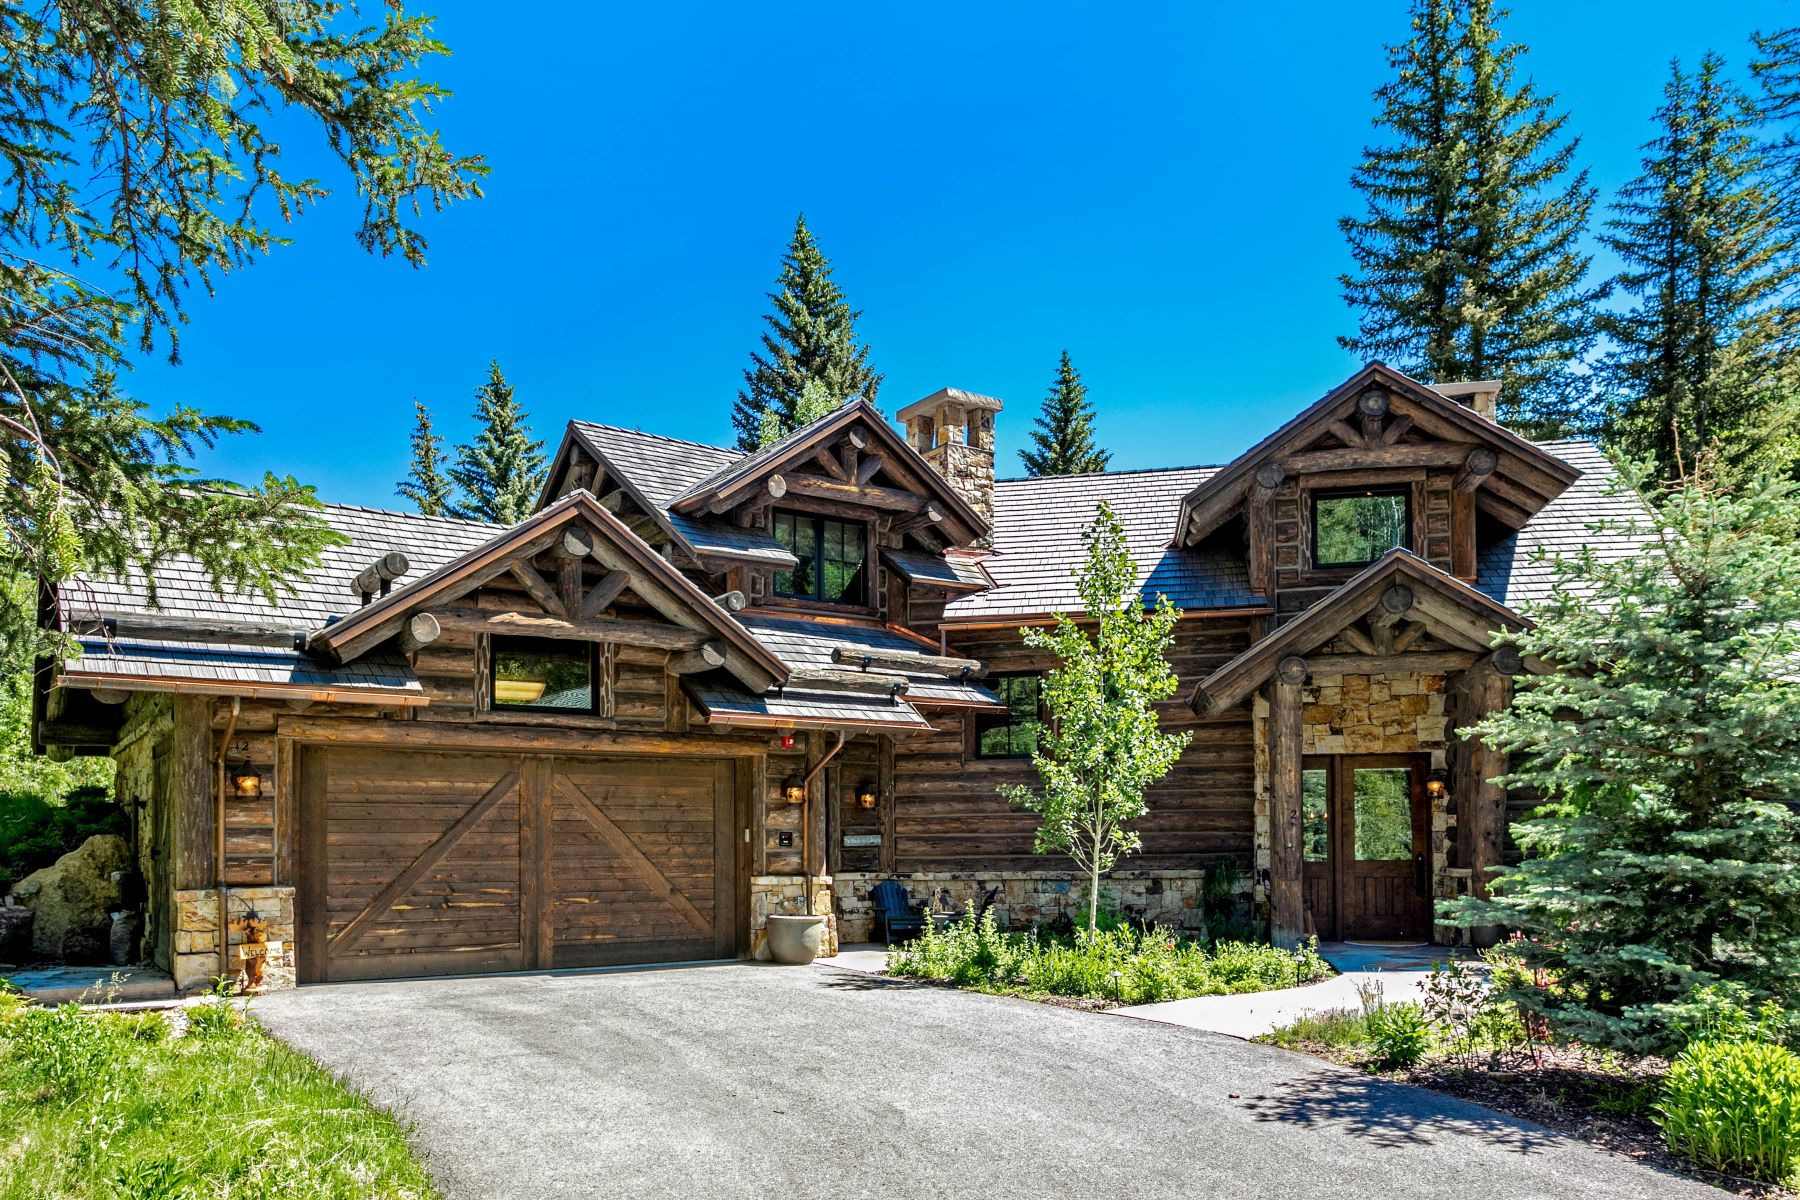 Single Family Homes for Sale at The Arrowhead Cabin 12 Cabin Creek Lane Edwards, Colorado 81632 United States